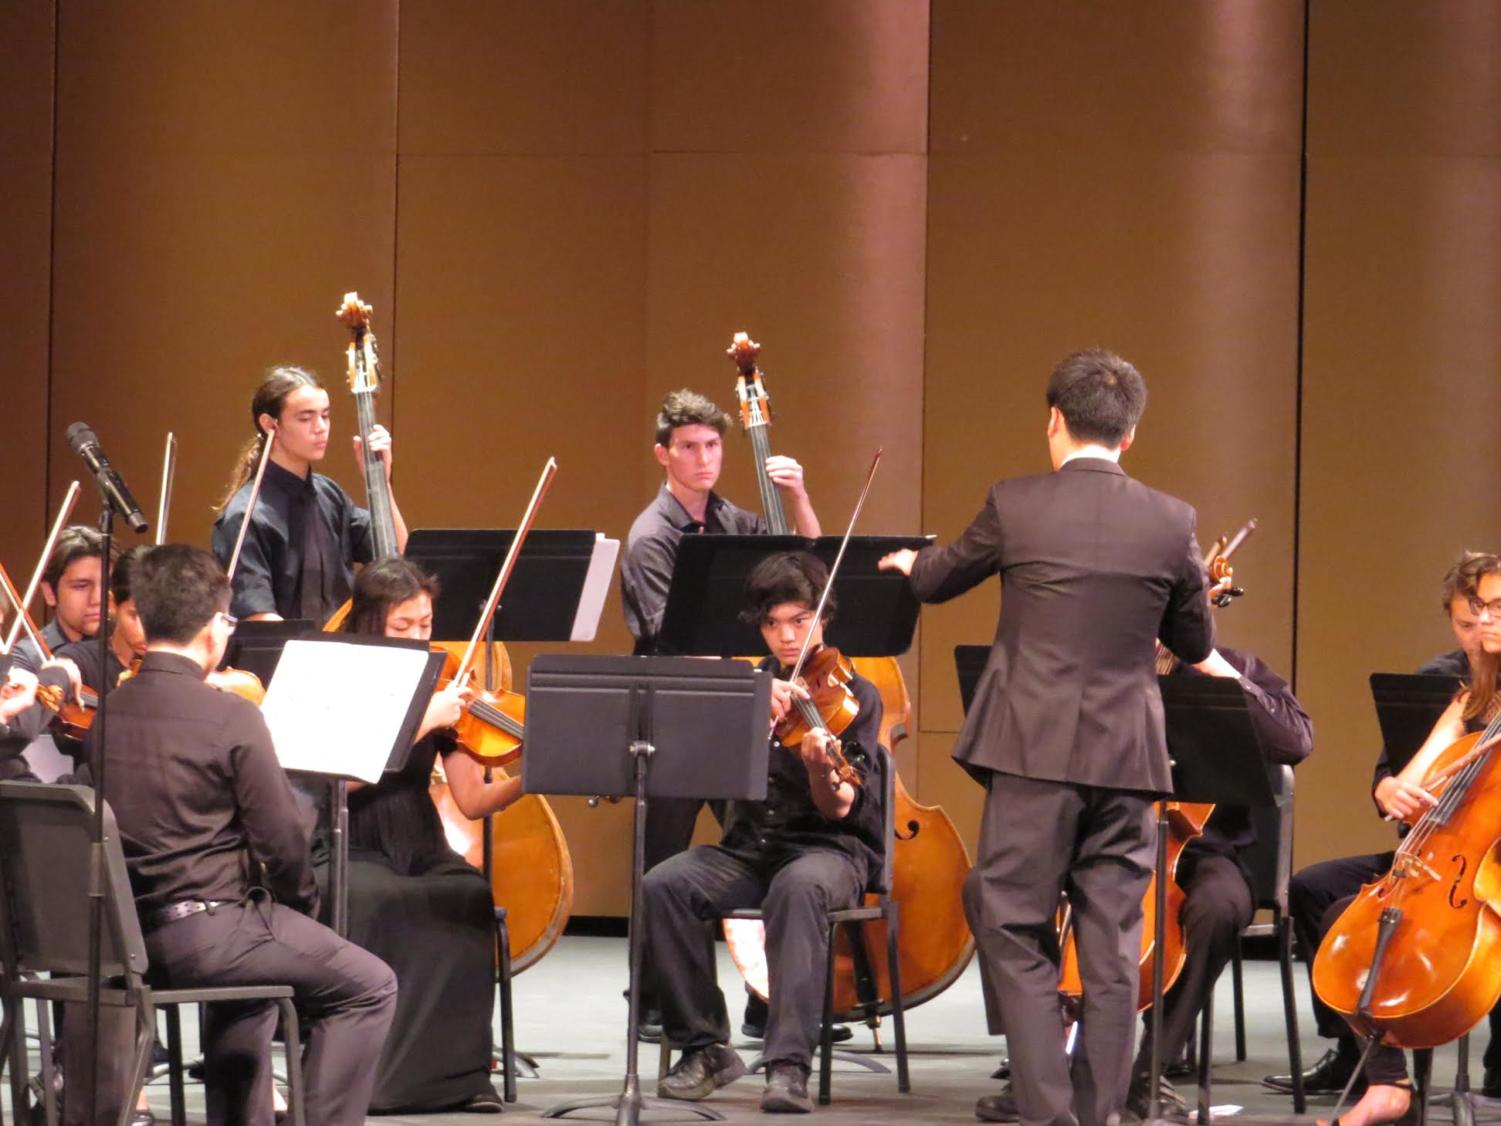 Mr. Fang conducting the Sinfonia Orchestra at the Performing Arts Center for their first concert of the year.